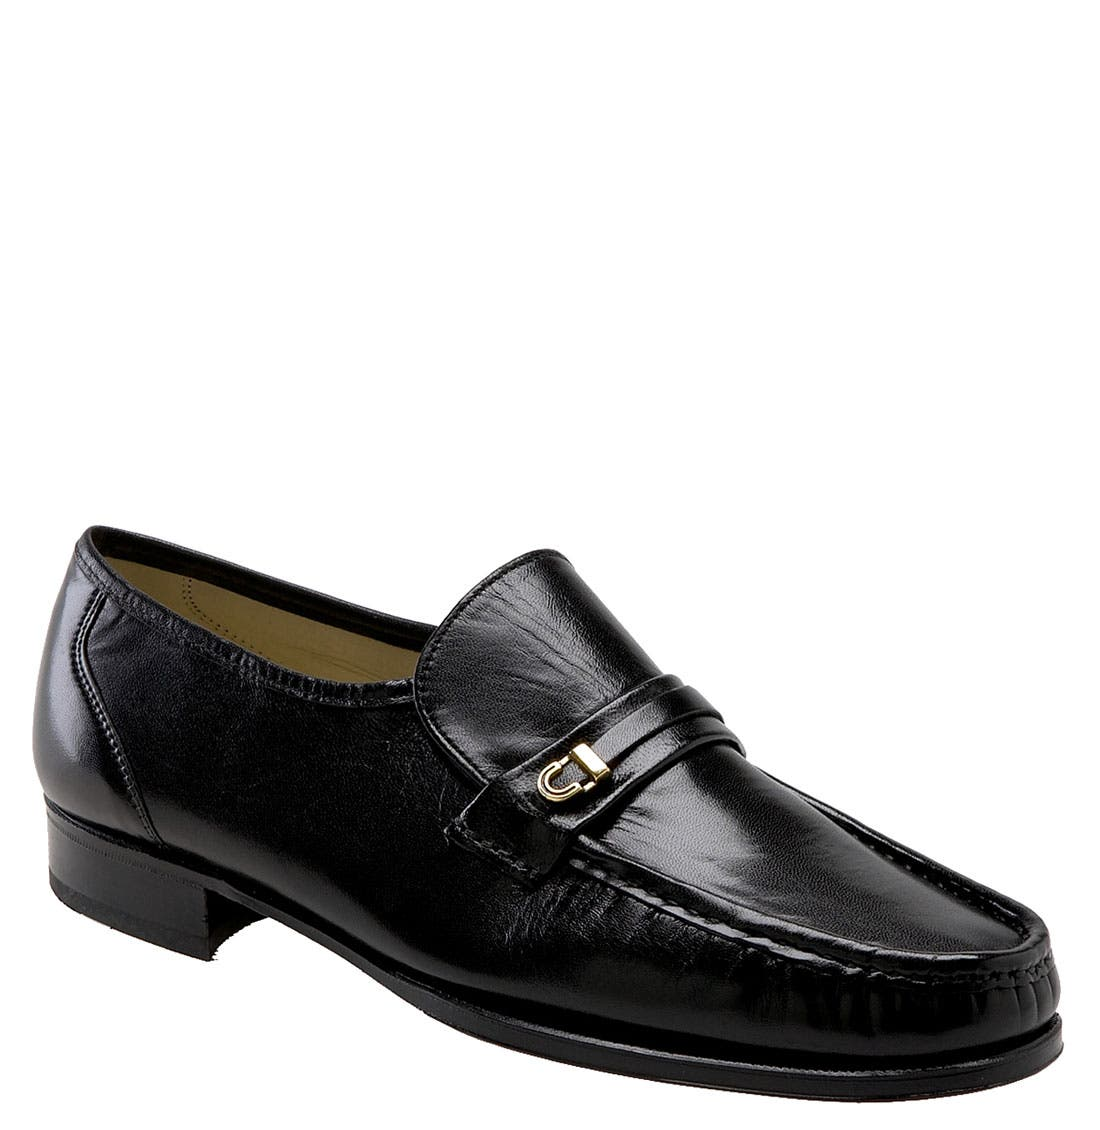 Alternate Image 1 Selected - Florsheim 'Como Imperial' Roll-Front Moccasin